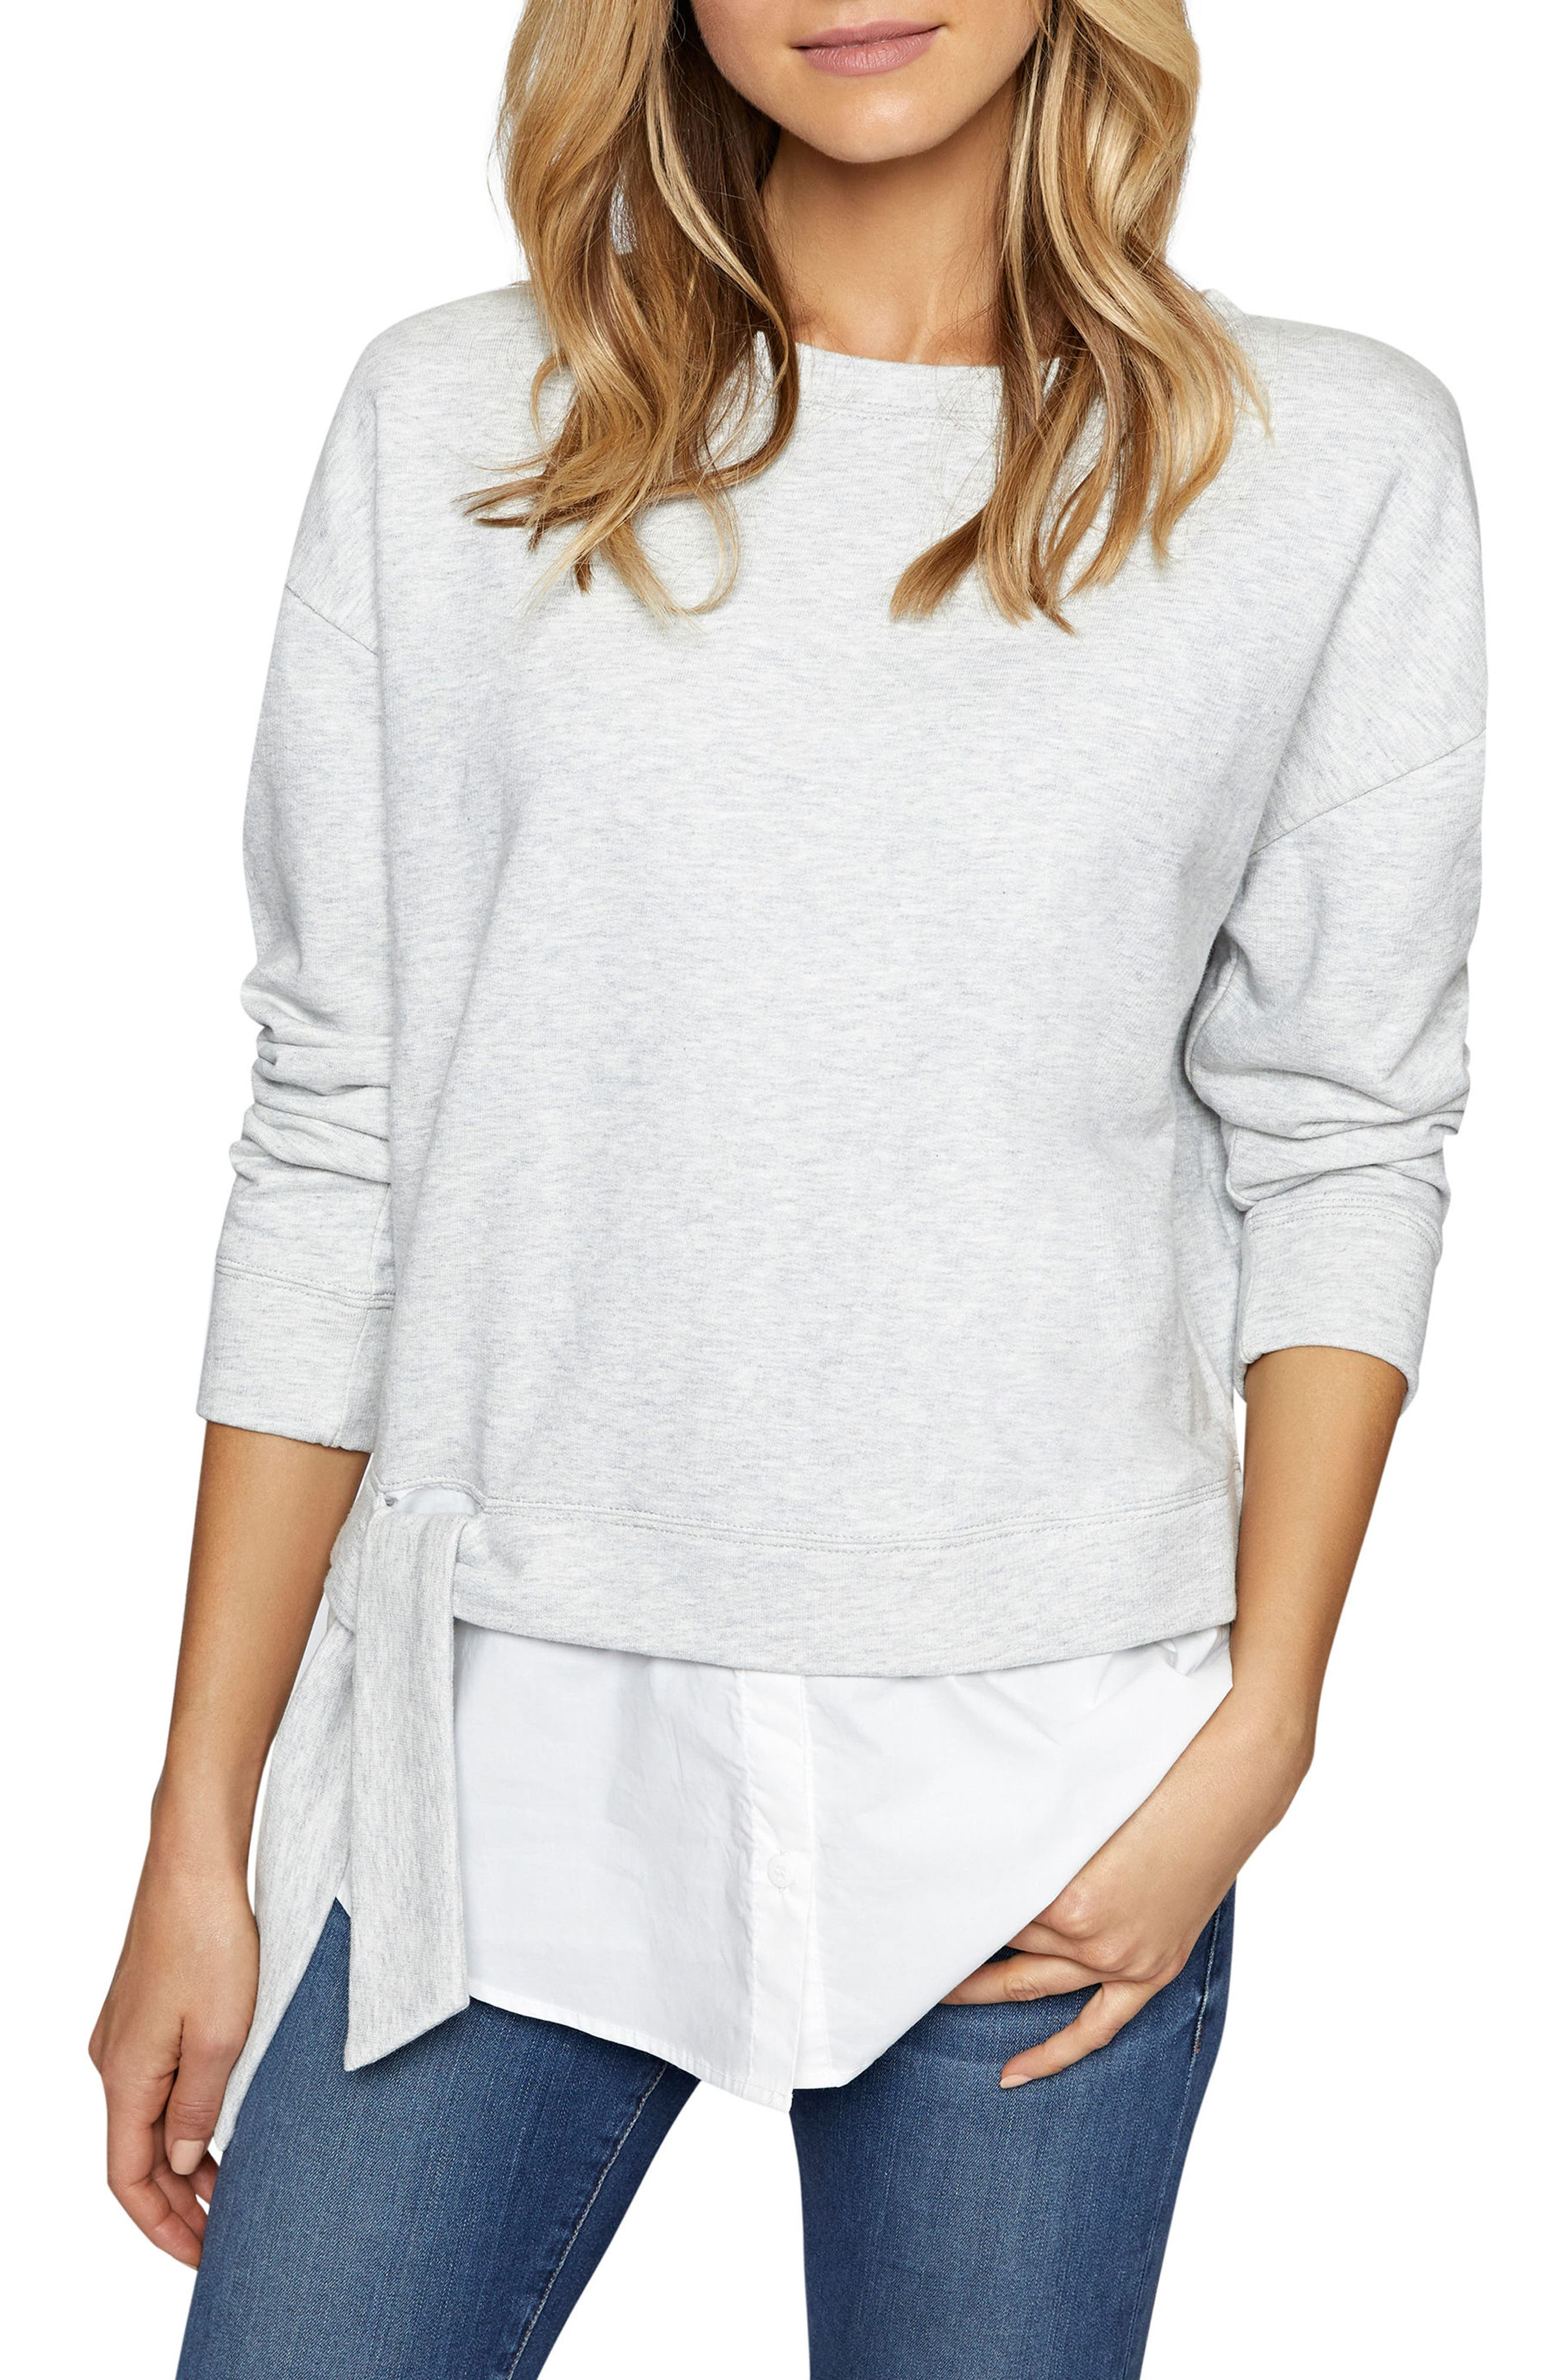 Ally Layered Look Sweatshirt,                             Main thumbnail 1, color,                             064